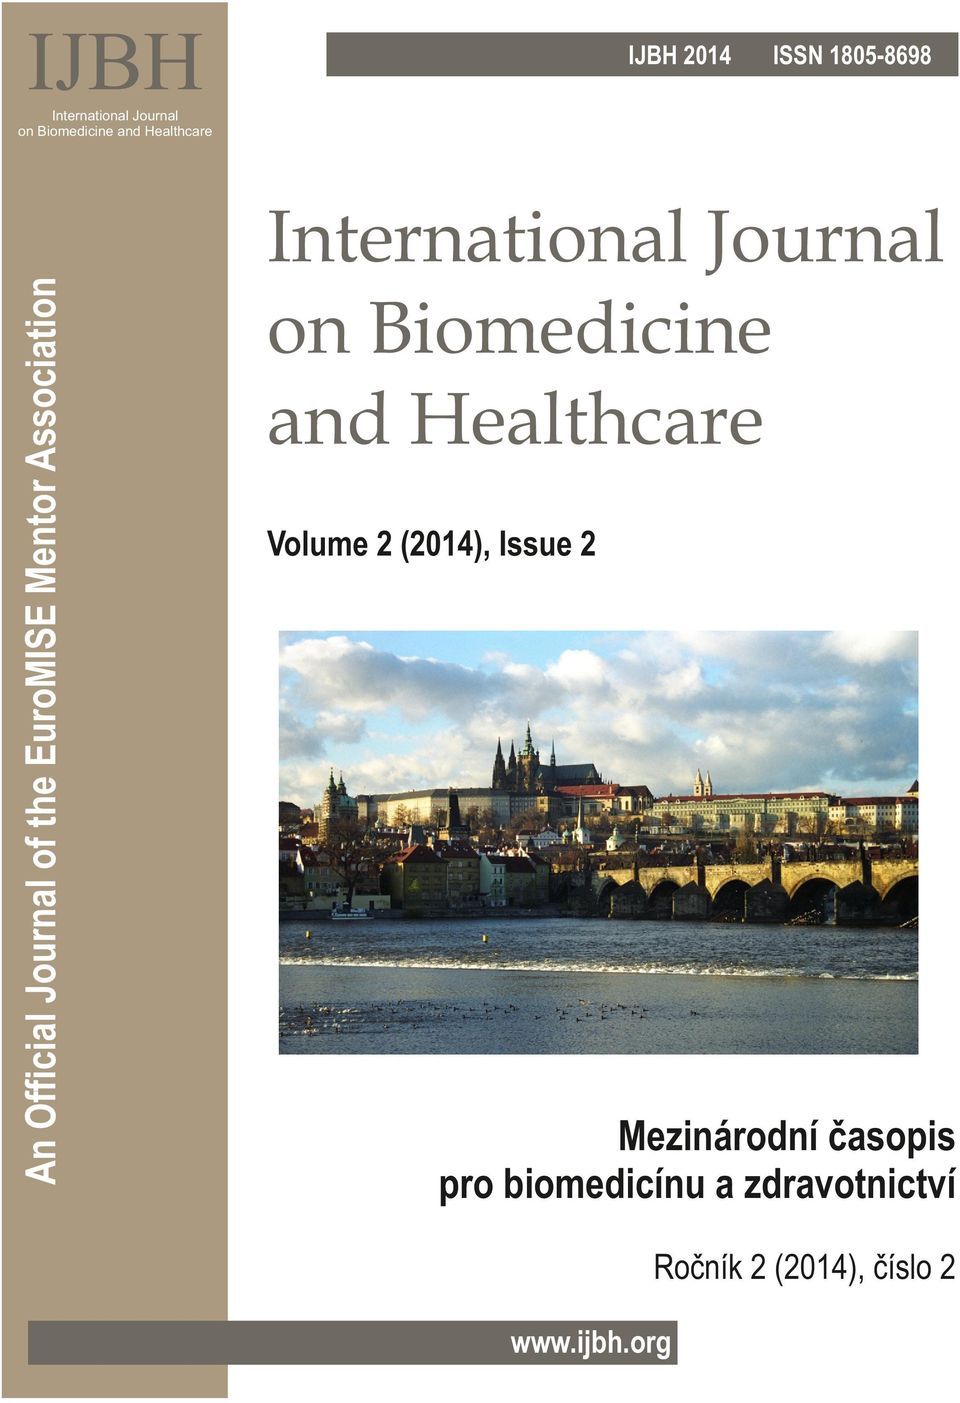 International Journal on Biomedicine and Healthcare Volume 2 (2014), Issue